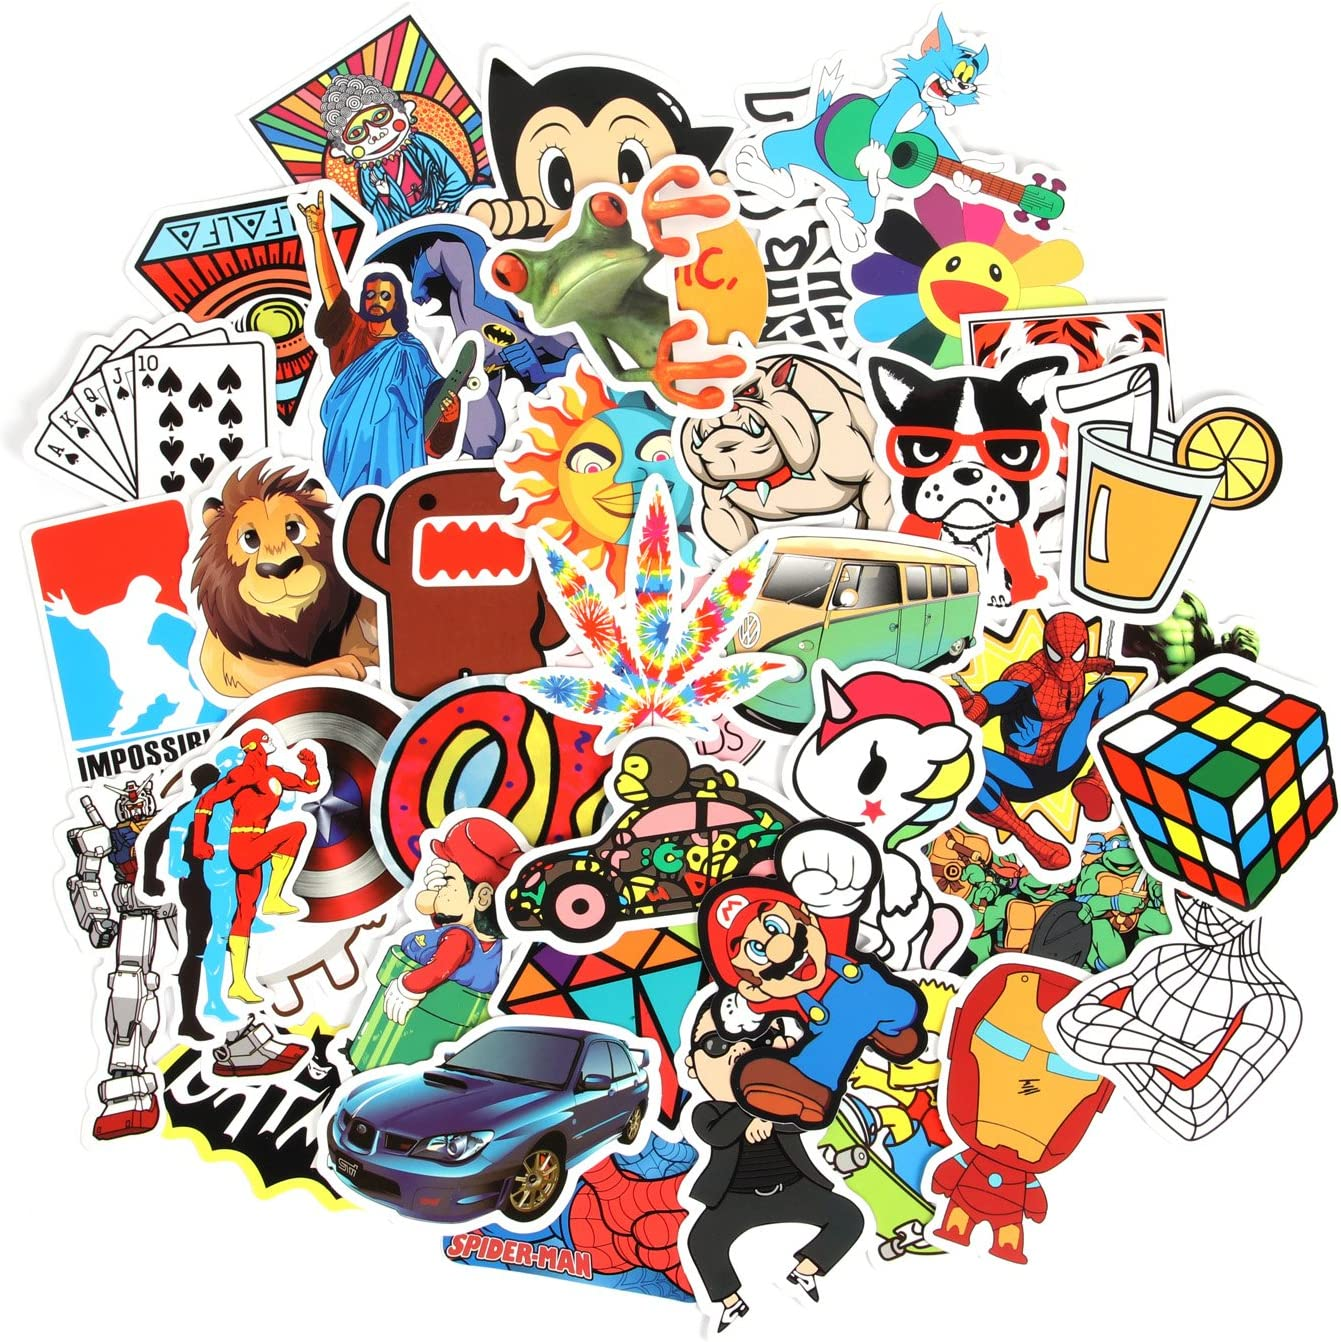 Fngeen Random Sticker 50-500pcs Variety Vinyl Car Sticker Motorcycle Bicycle Luggage Decal Graffiti Patches Bike Skateboard Stickers for Laptop Stickers (150pcs)